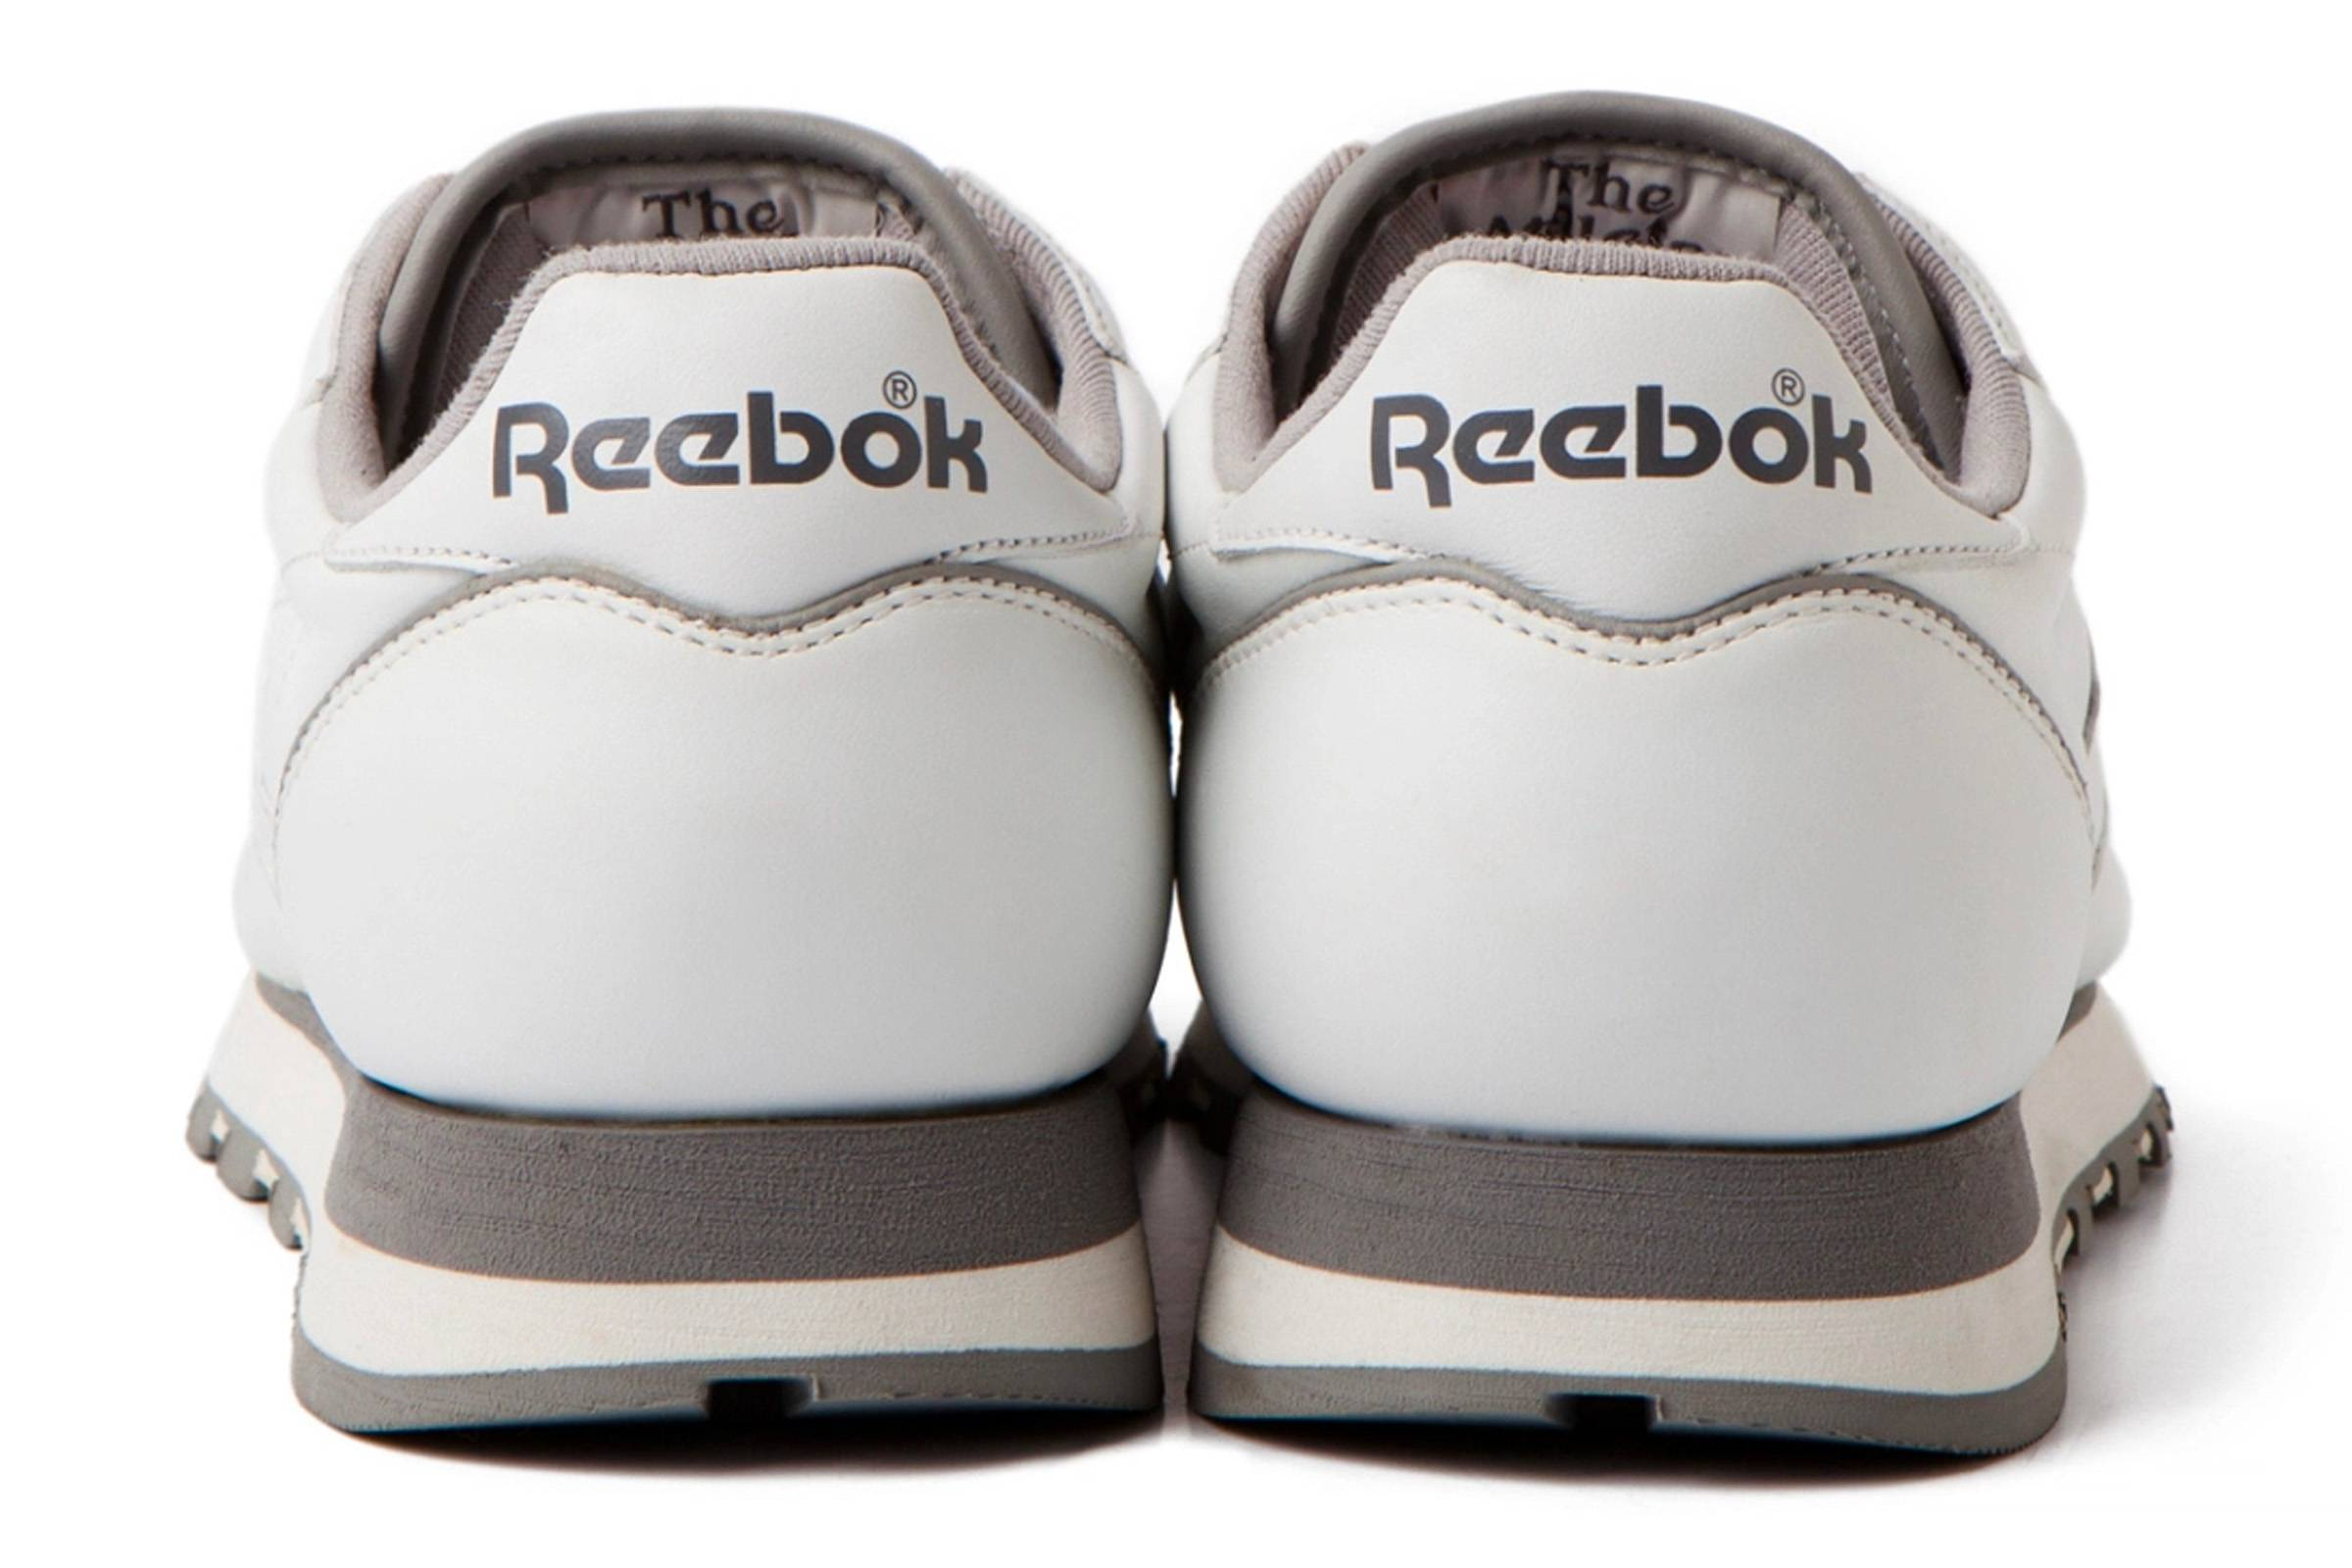 A Quick History of Reebok